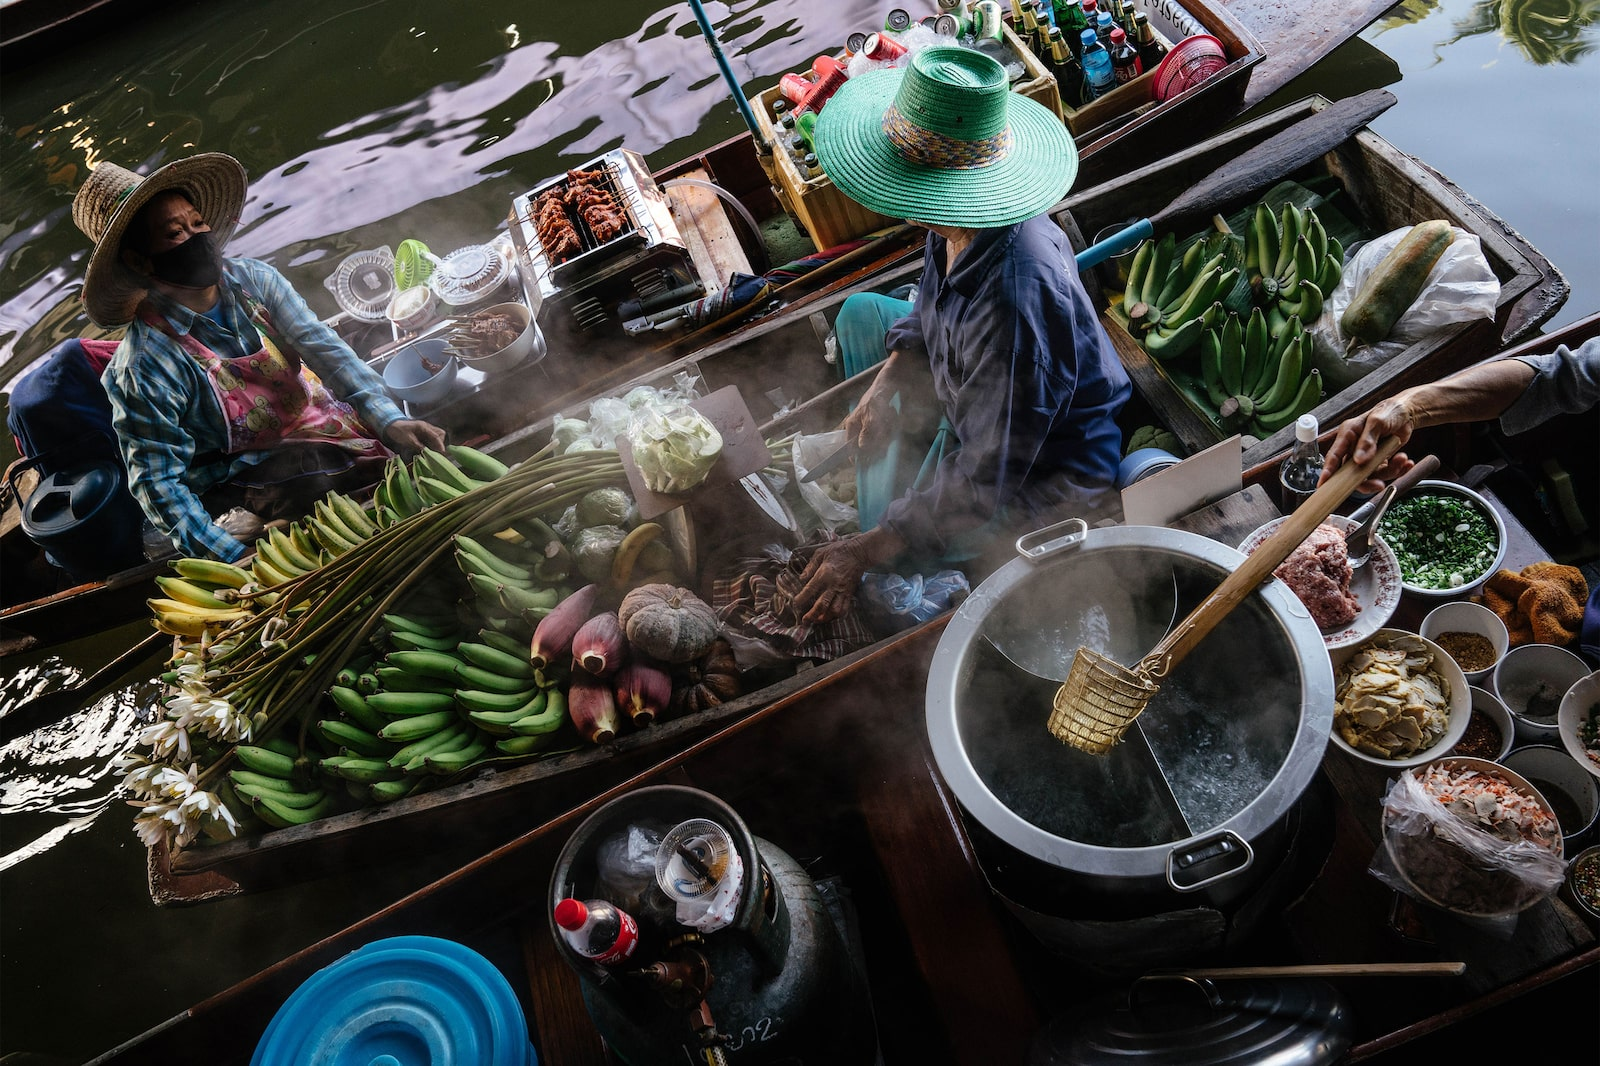 Loaded sampan boats in the floating market